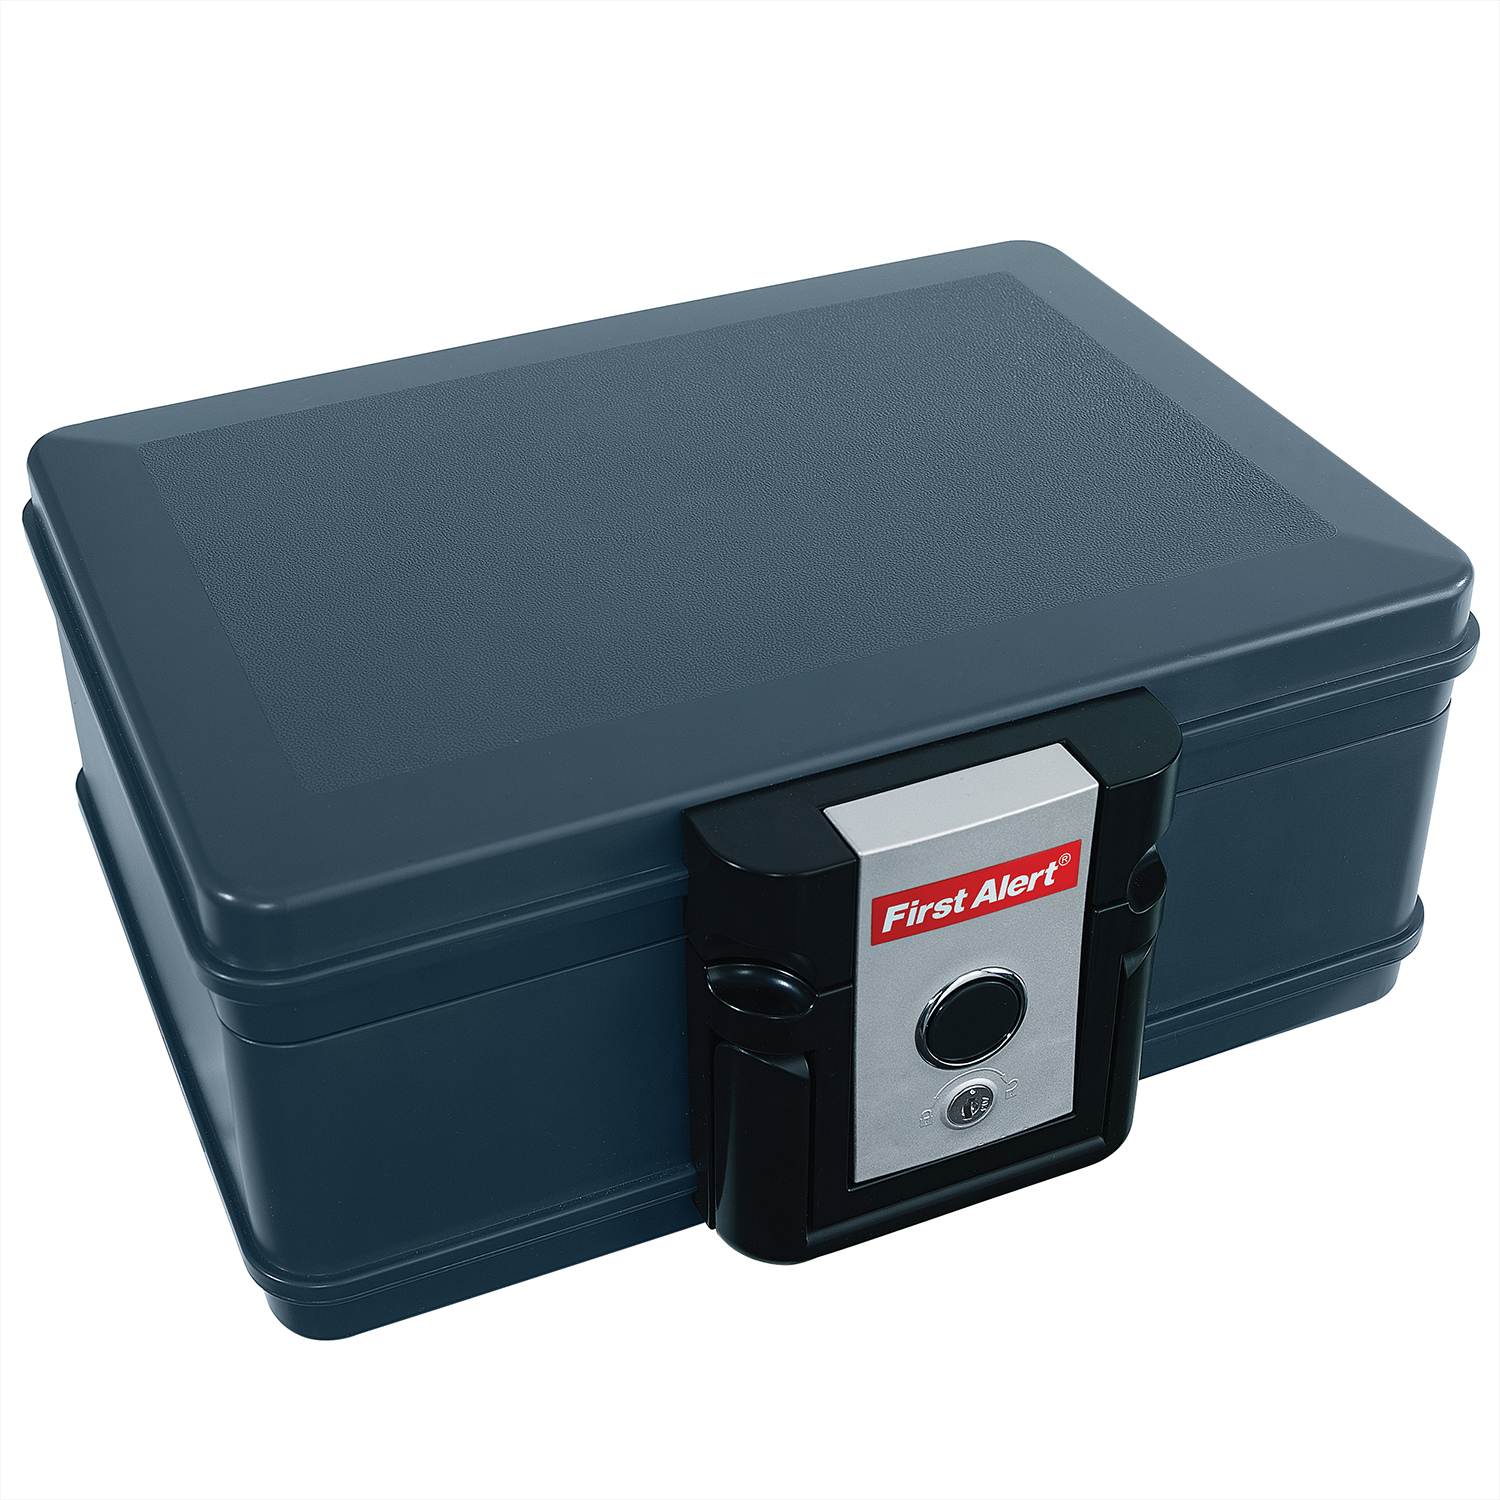 First Alert 2013F Water and Fire Protector File Chest, 0.17 Cubic Feet